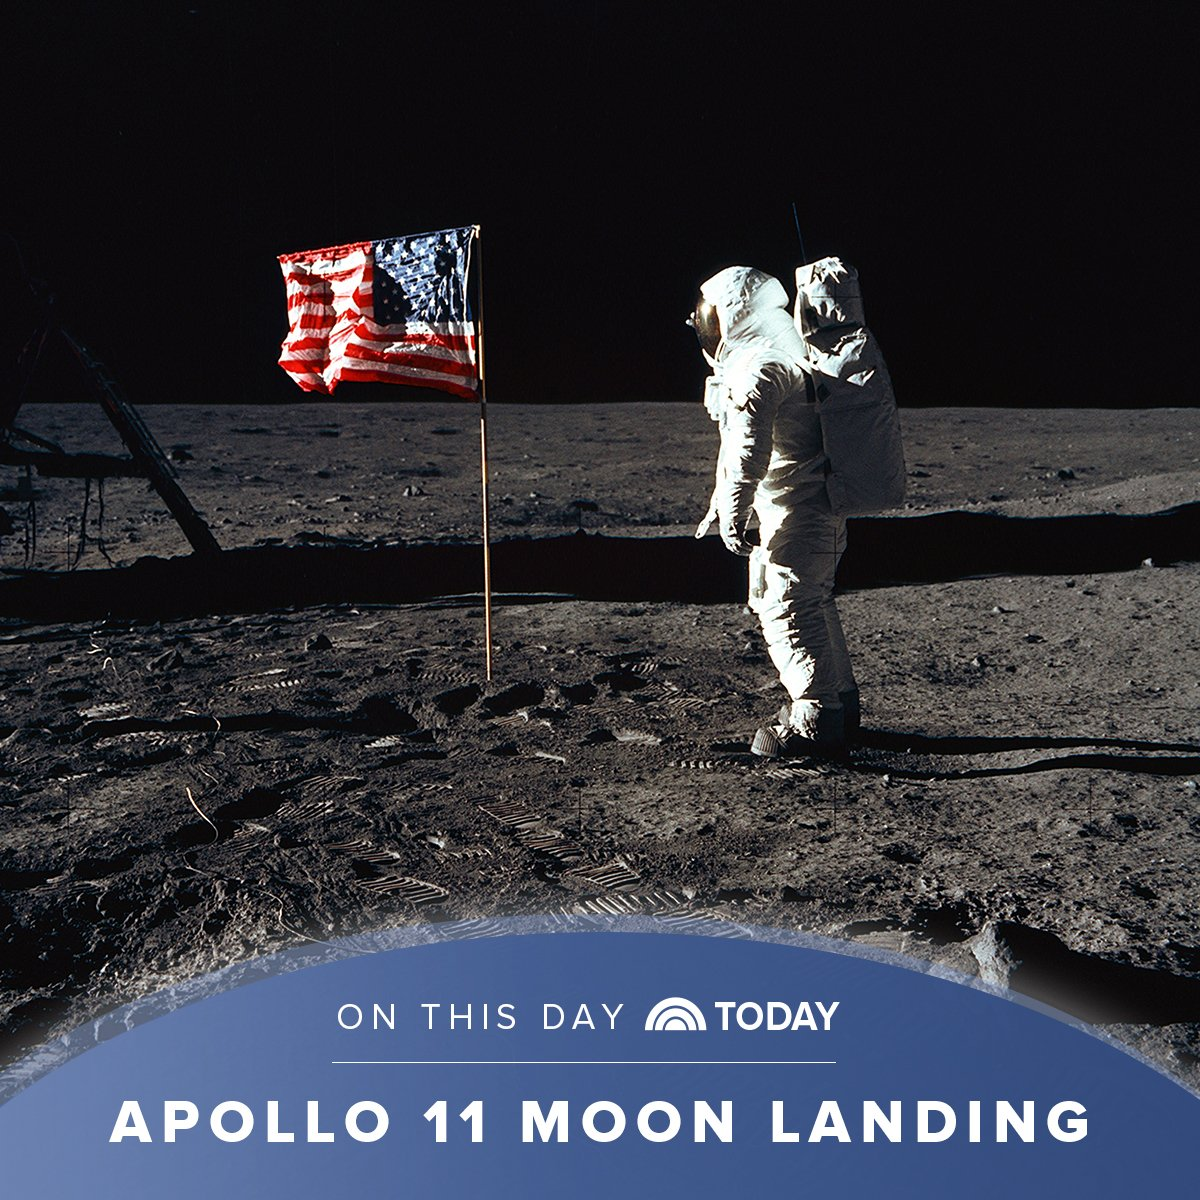 essay on the moon landing In 1969, the lunar landings transfixed the whole globe previously the idea of landing on the moon had been the stuff of science fiction but, in a seeming short space of time, man had enabled huge strides in technology which enabled the seemingly impossible to become reality.